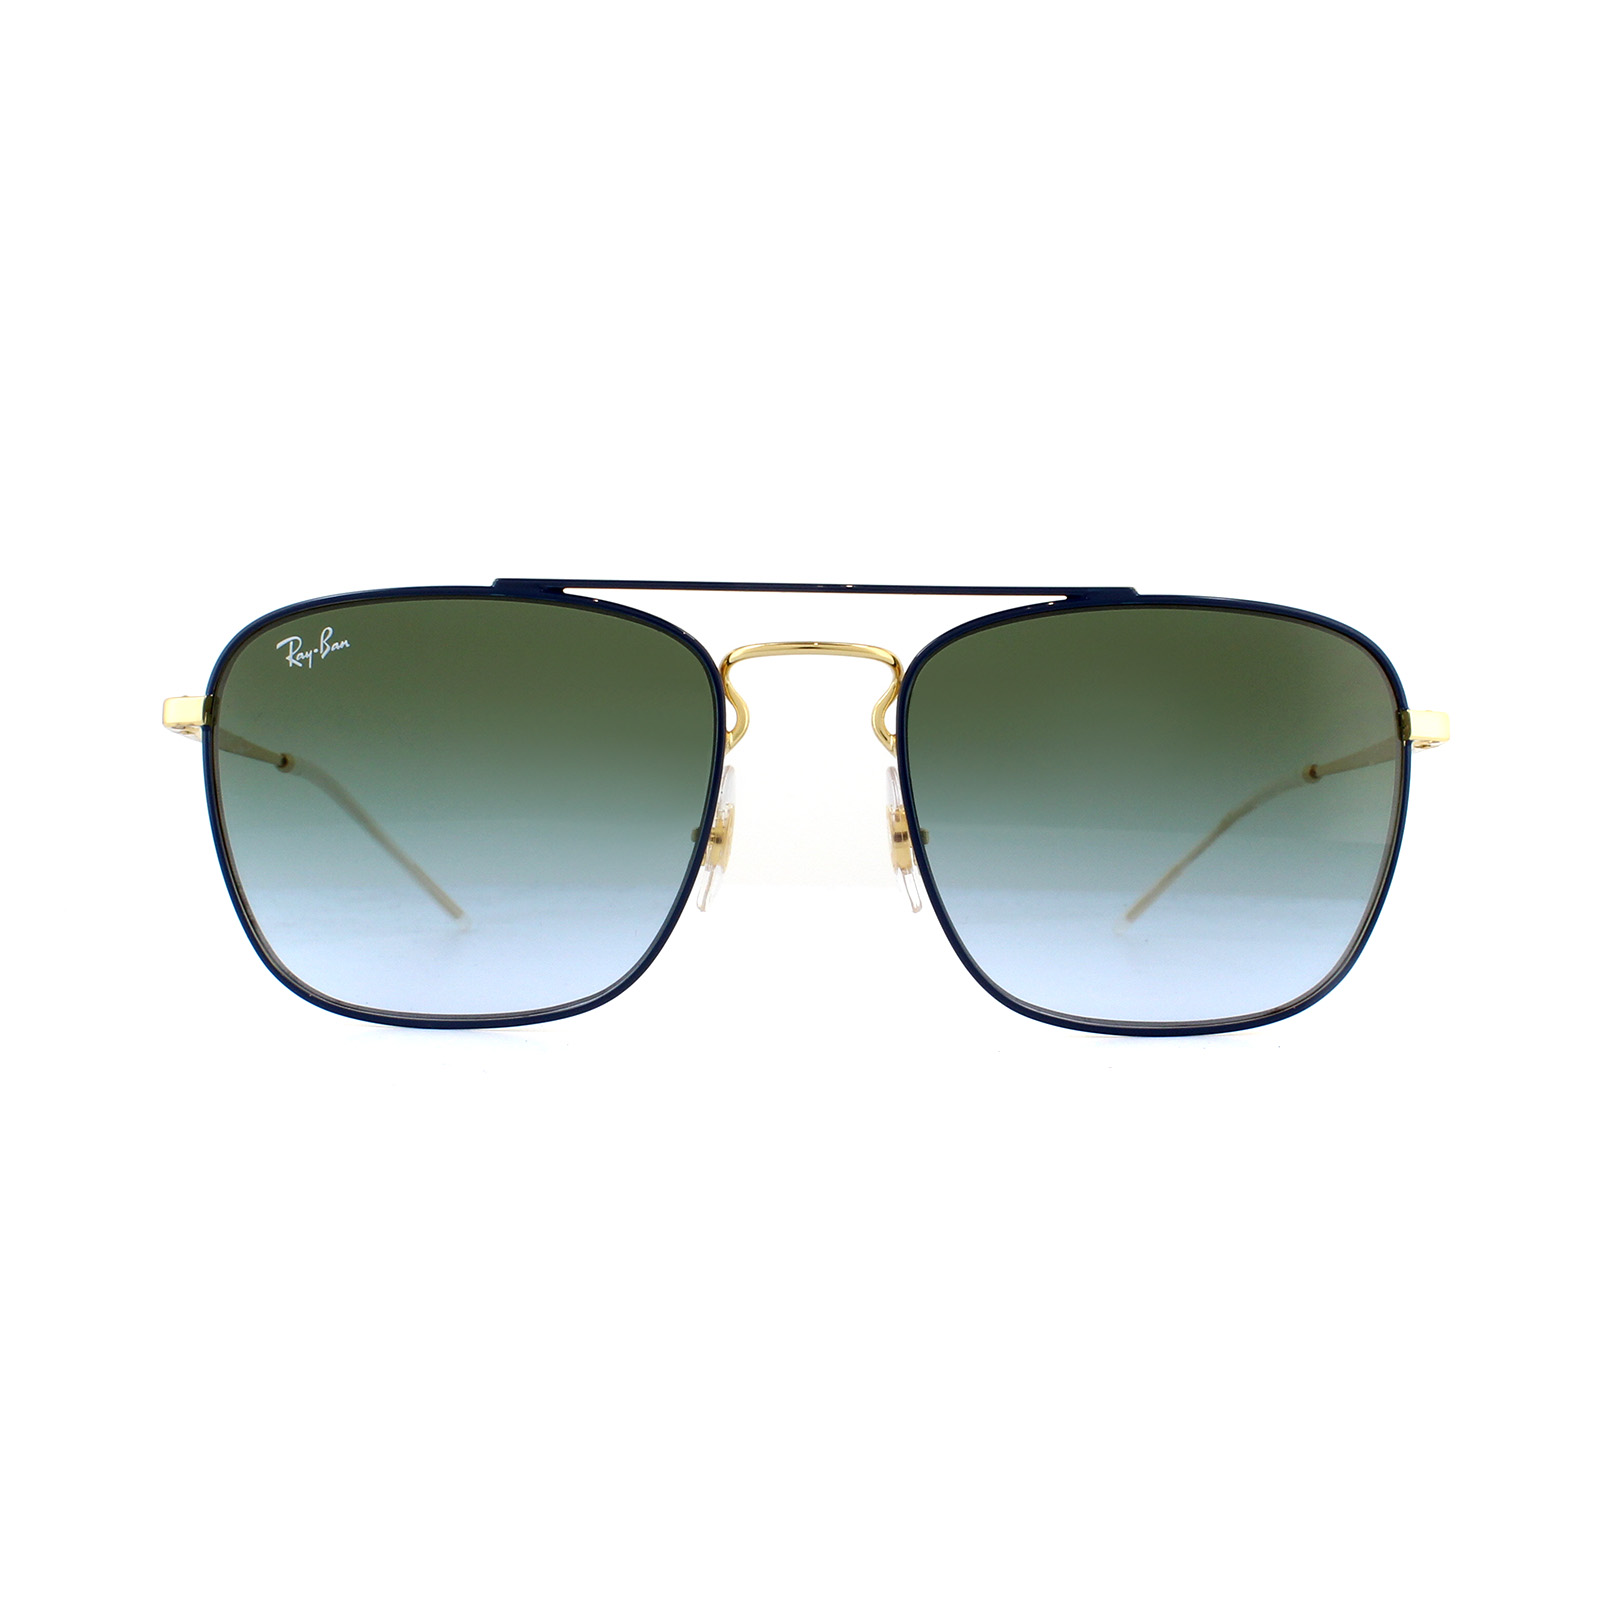 c9bf9b7a95 Sentinel Ray-Ban Sunglasses 3588 9062I7 Blue Gold Green Gradient